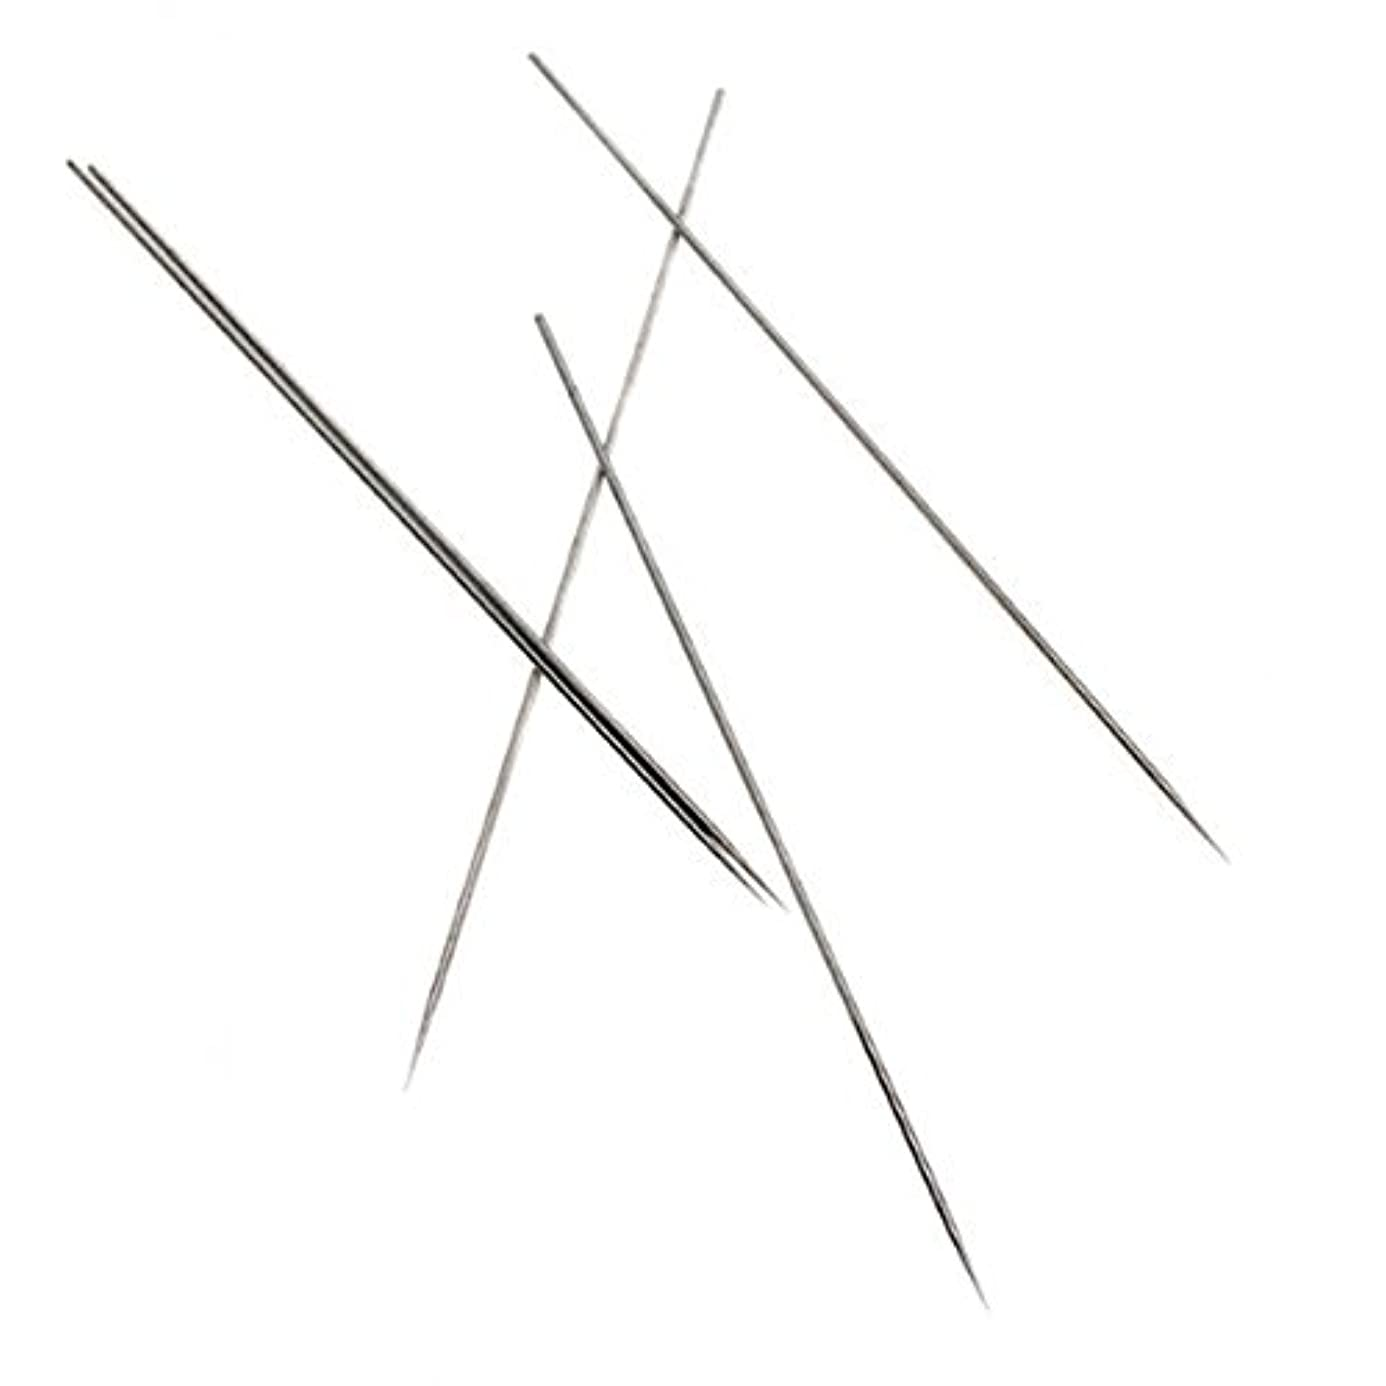 Tinksky Stainless Steel 0.3mm Needle Replacement for Airbrush Gun, Pack of 5 vmx8580593